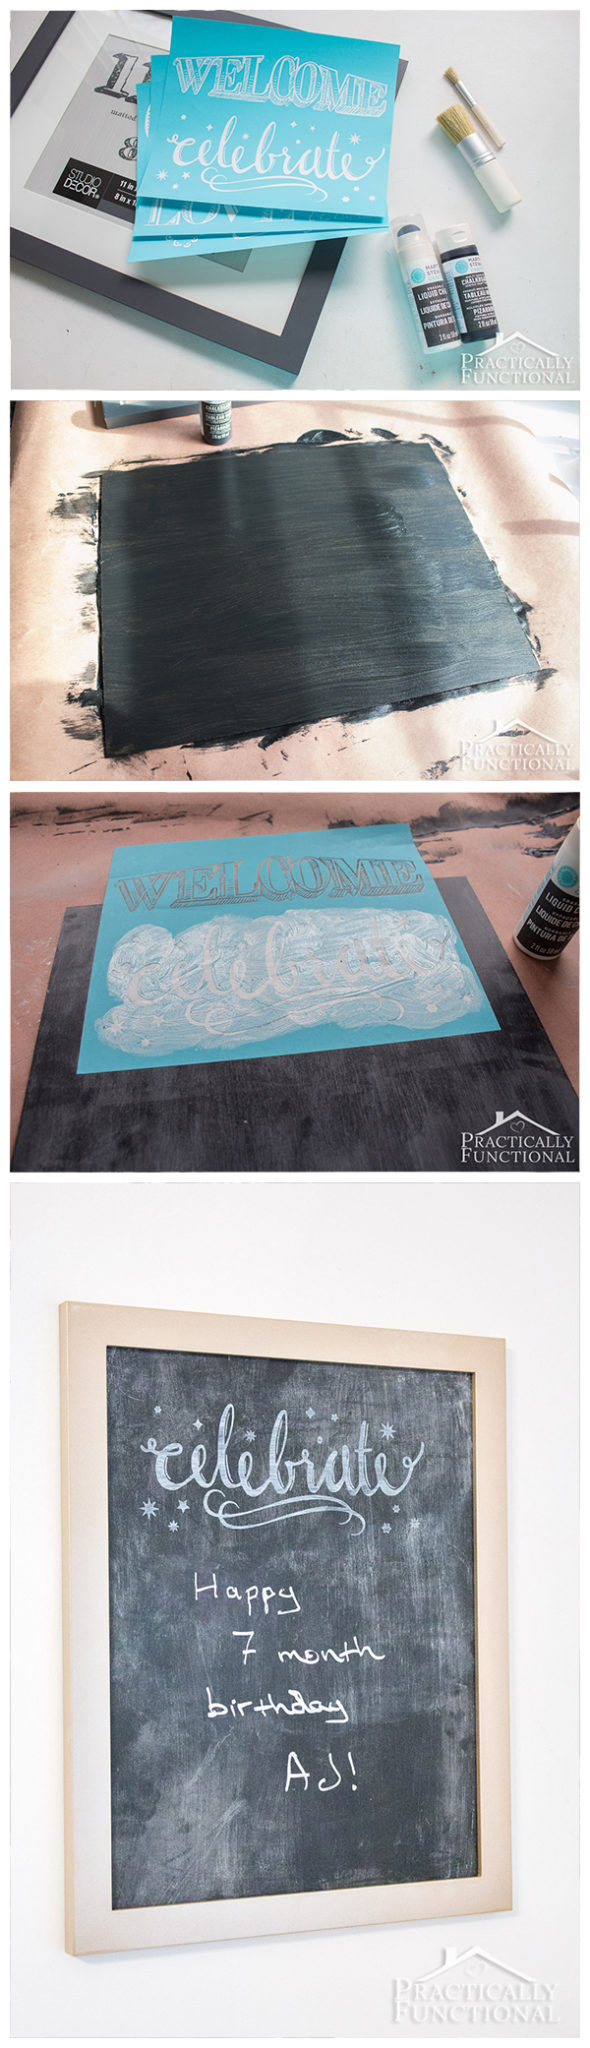 Turn an old picture frame into a DIY chalkboard sign with just a few coats of paint!